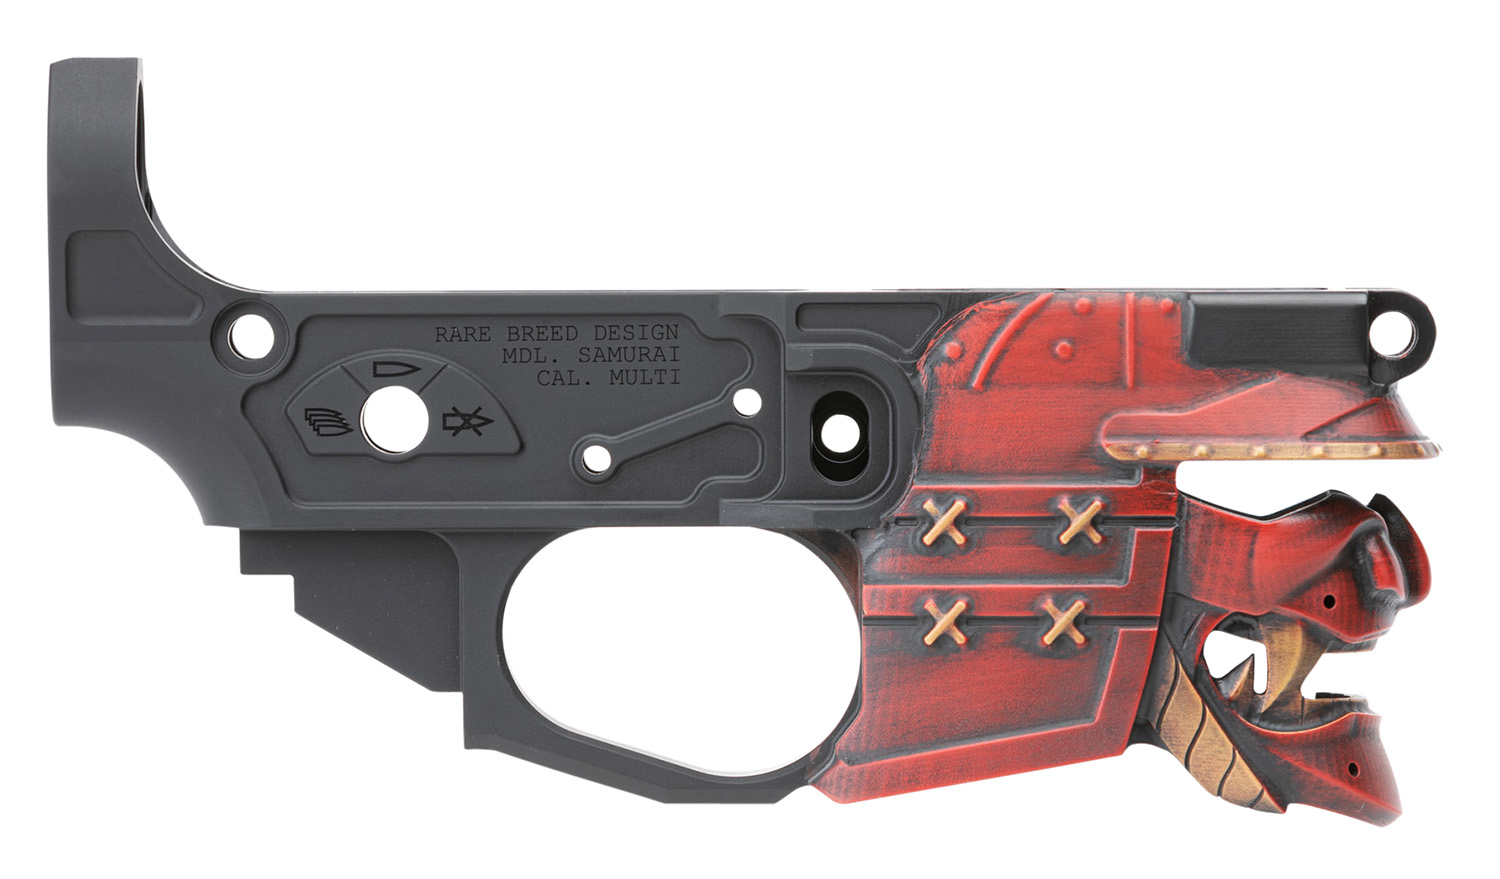 Spikes STLB630-PH Rare Breed Samurai Stripped Lower Receiver Multi-Caliber 7075-T6 Aluminum Black Anodized with Painted Front for AR-15